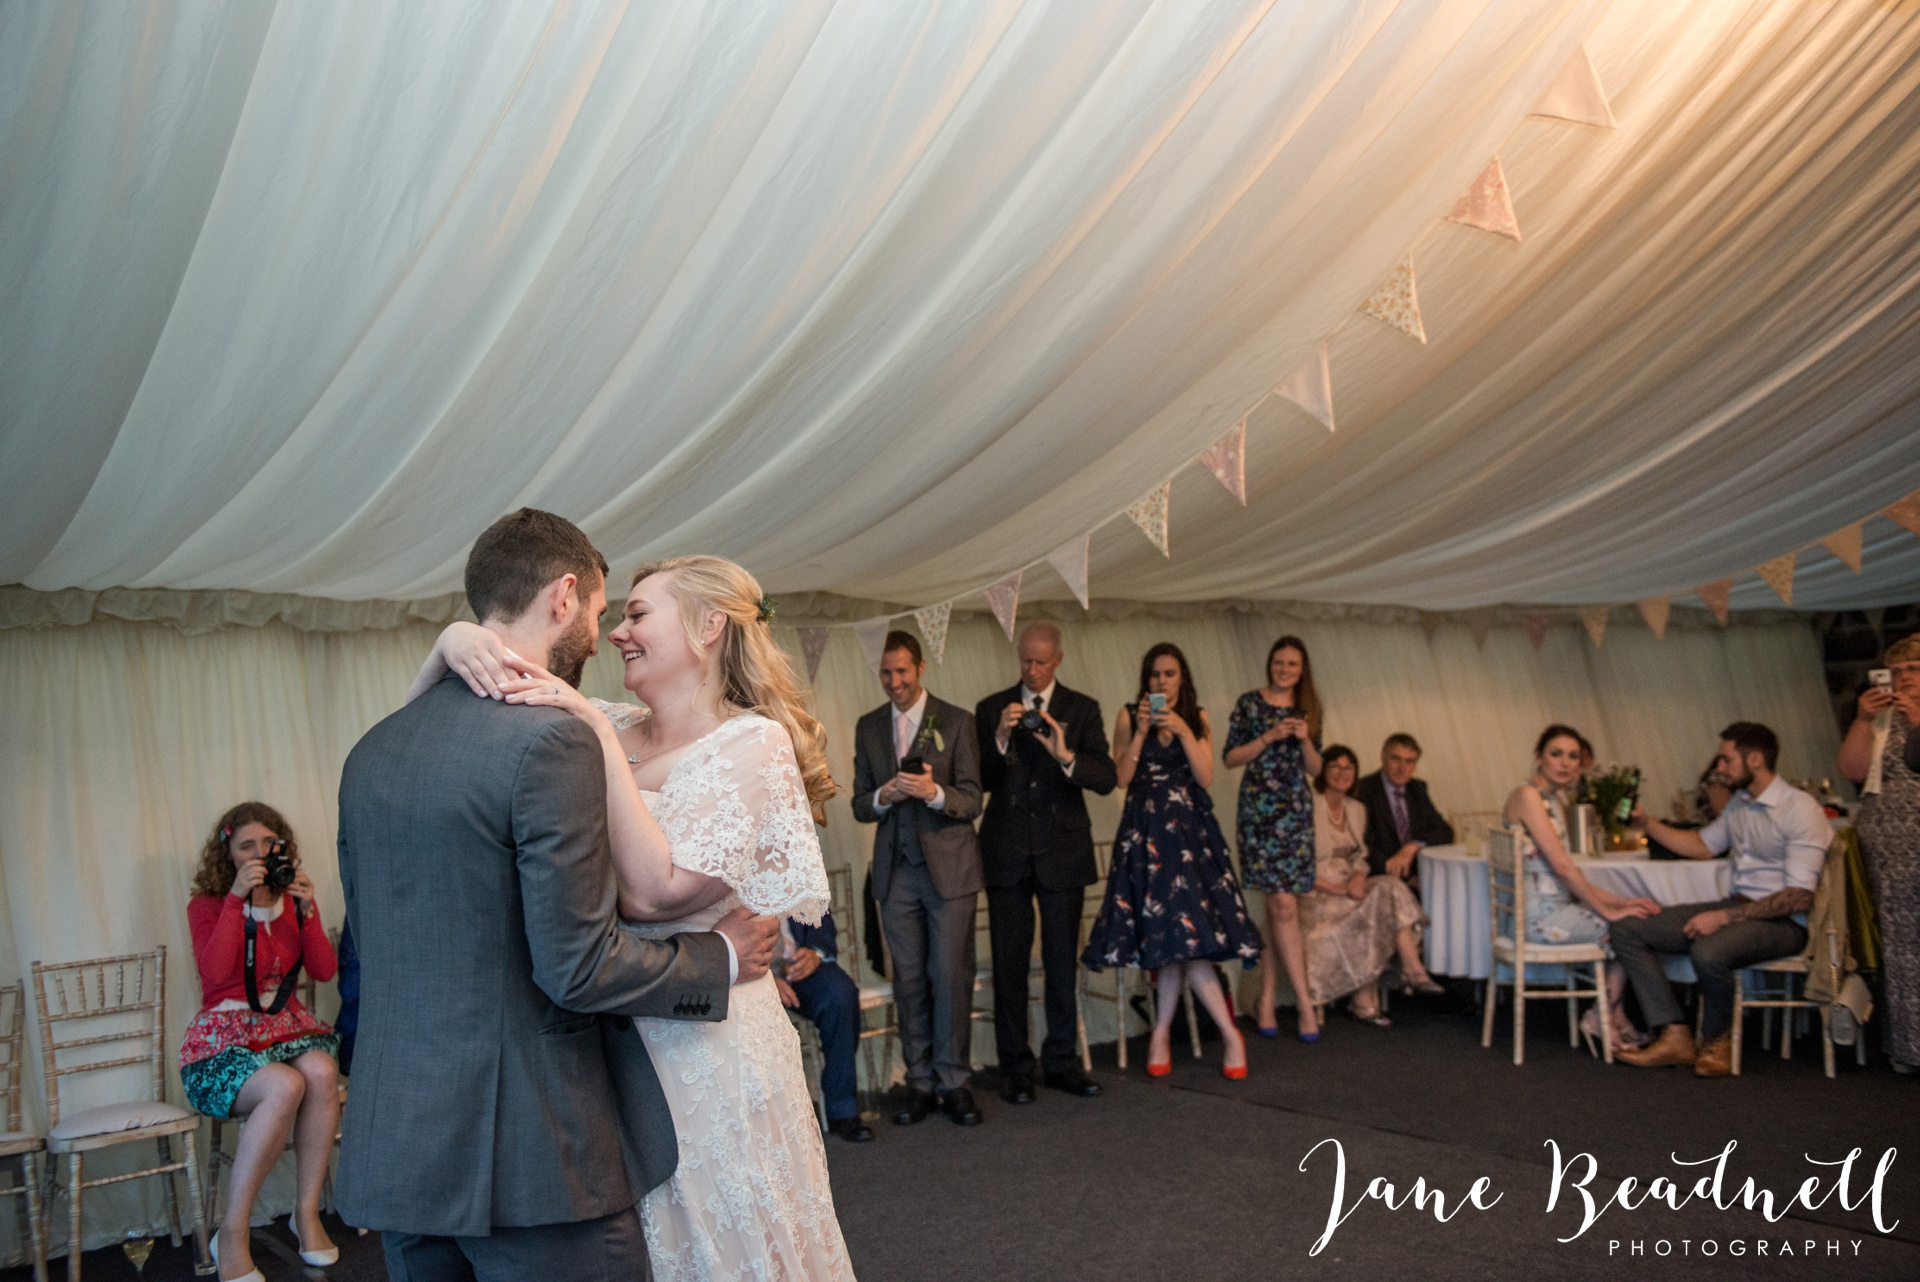 Yorkshire Wedding Photography the cheerful Chilli Barn Wedding by Jane Beadnell Photography_0201